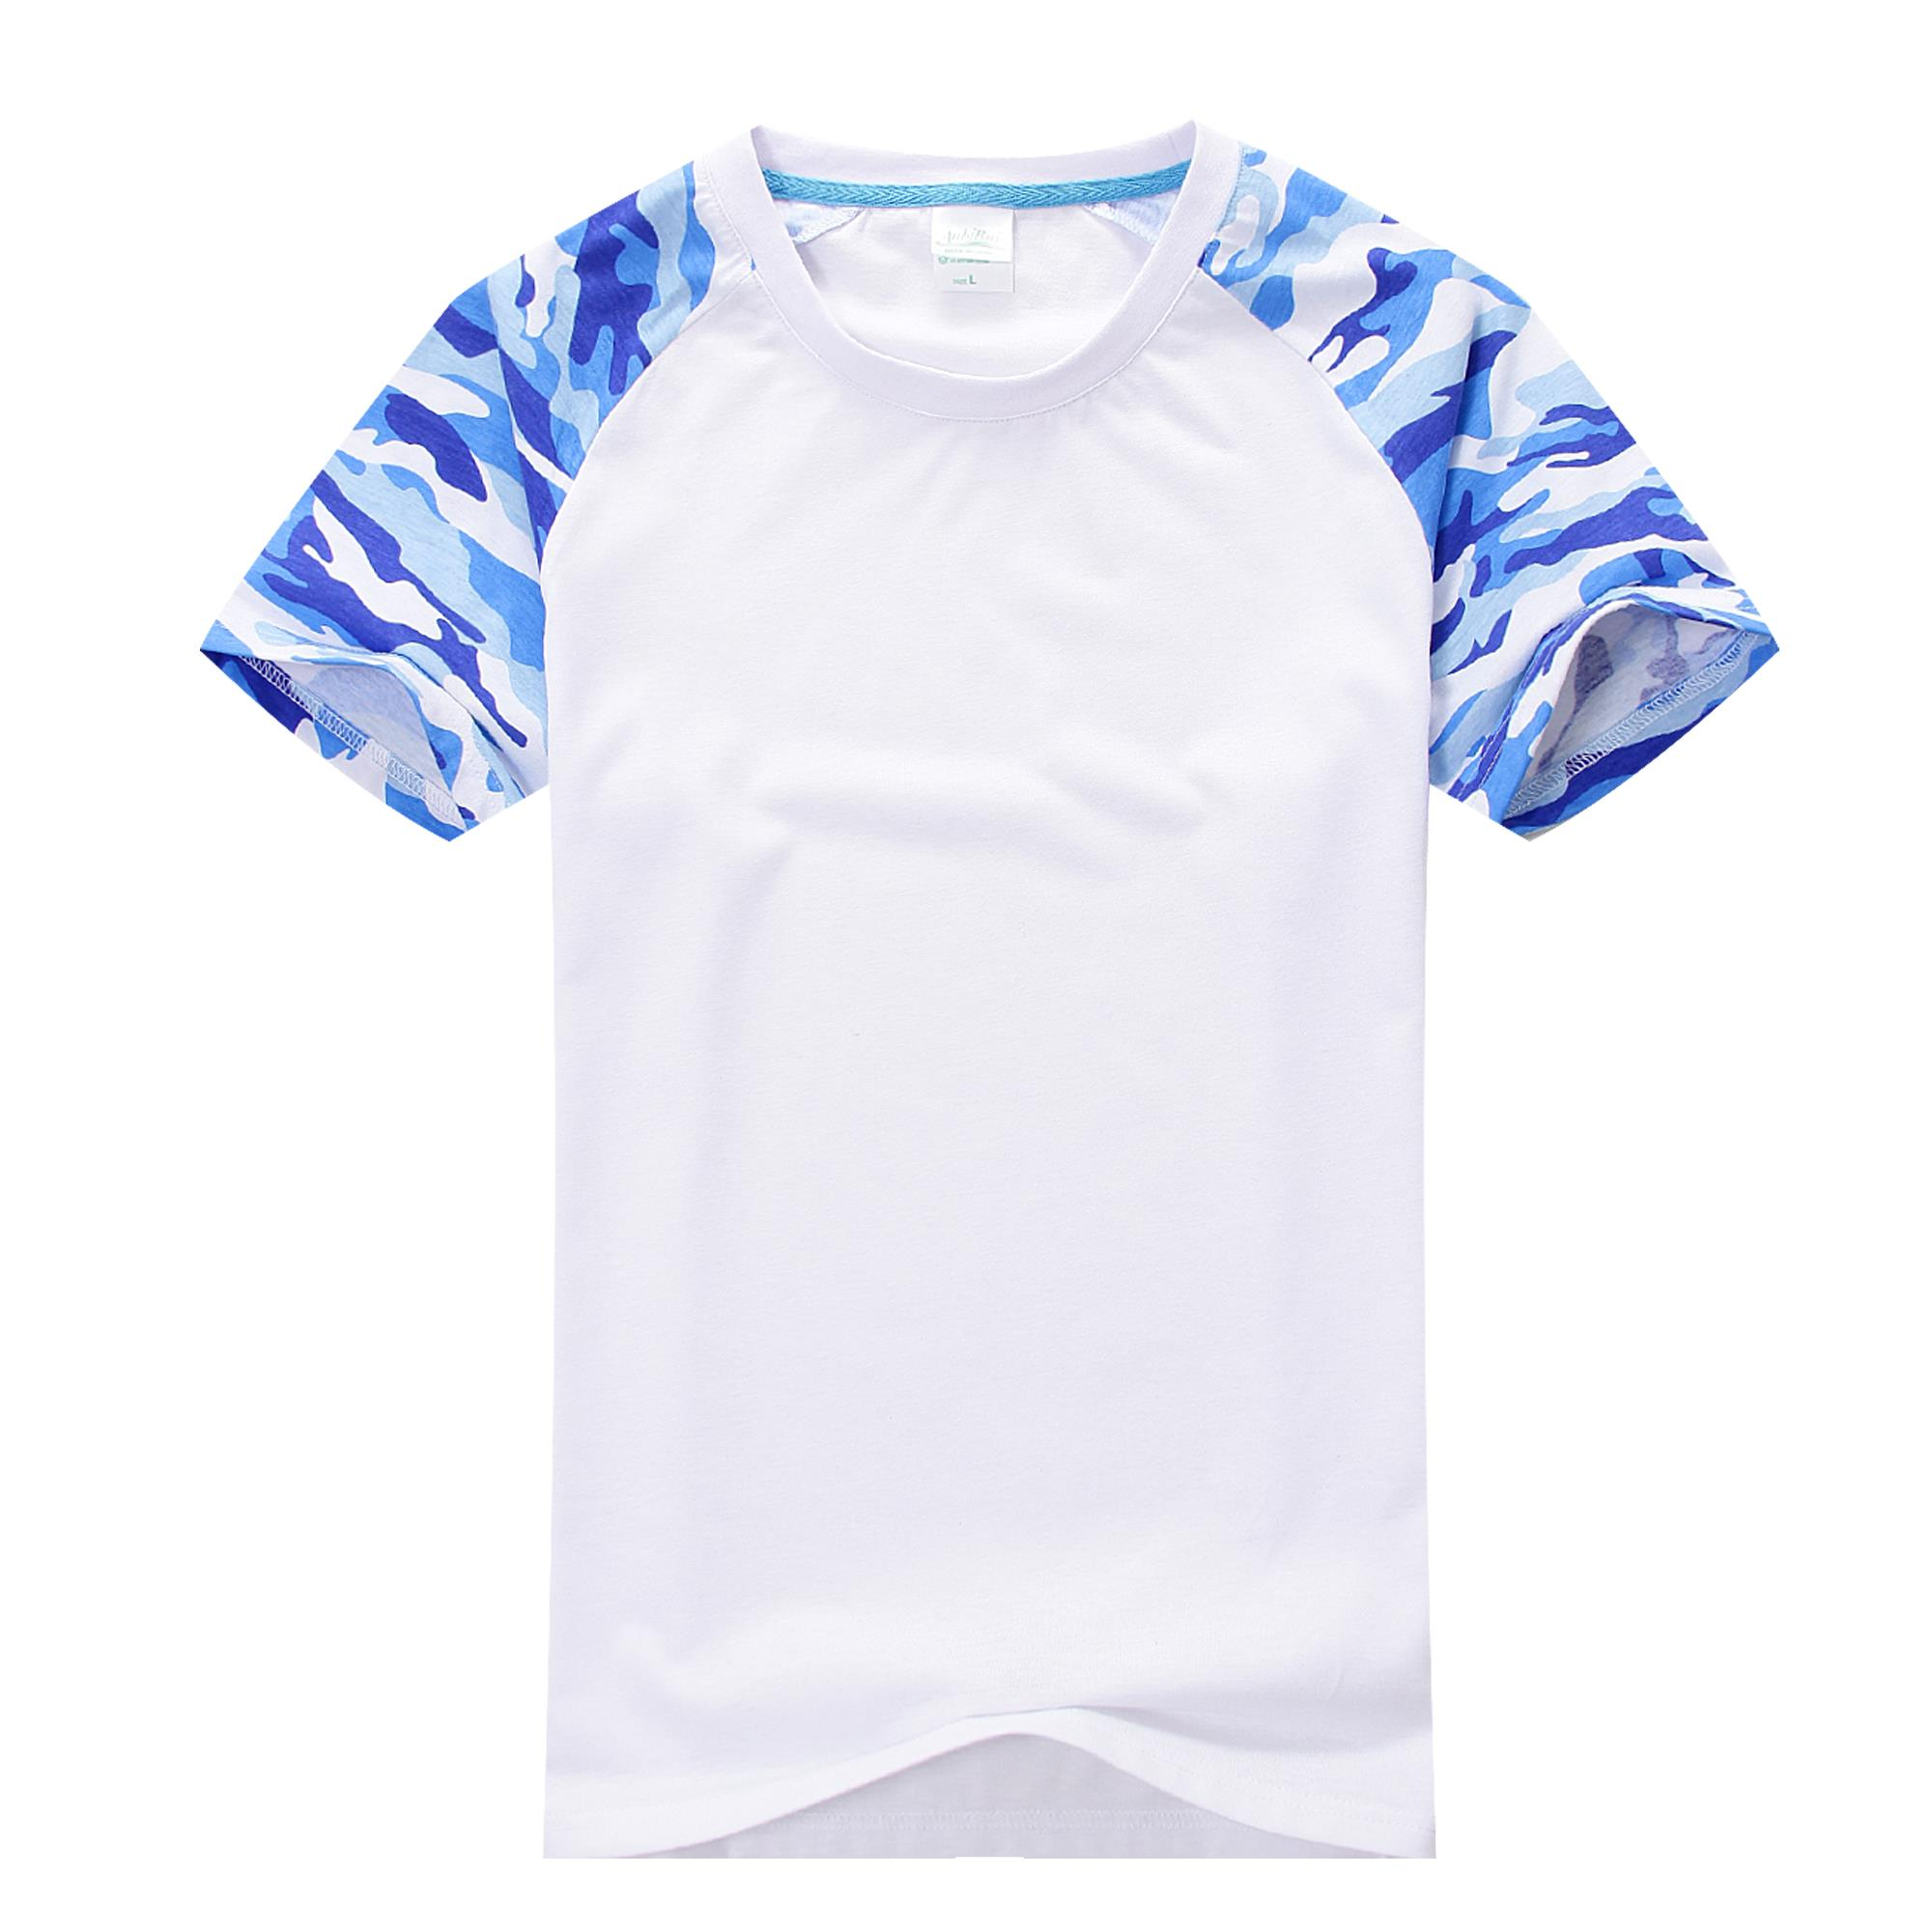 Create own logo on t shirt battle camouflage paint short sleeve reglan logo printing embroidered brand name modal cotton tshirt(China (Mainland))